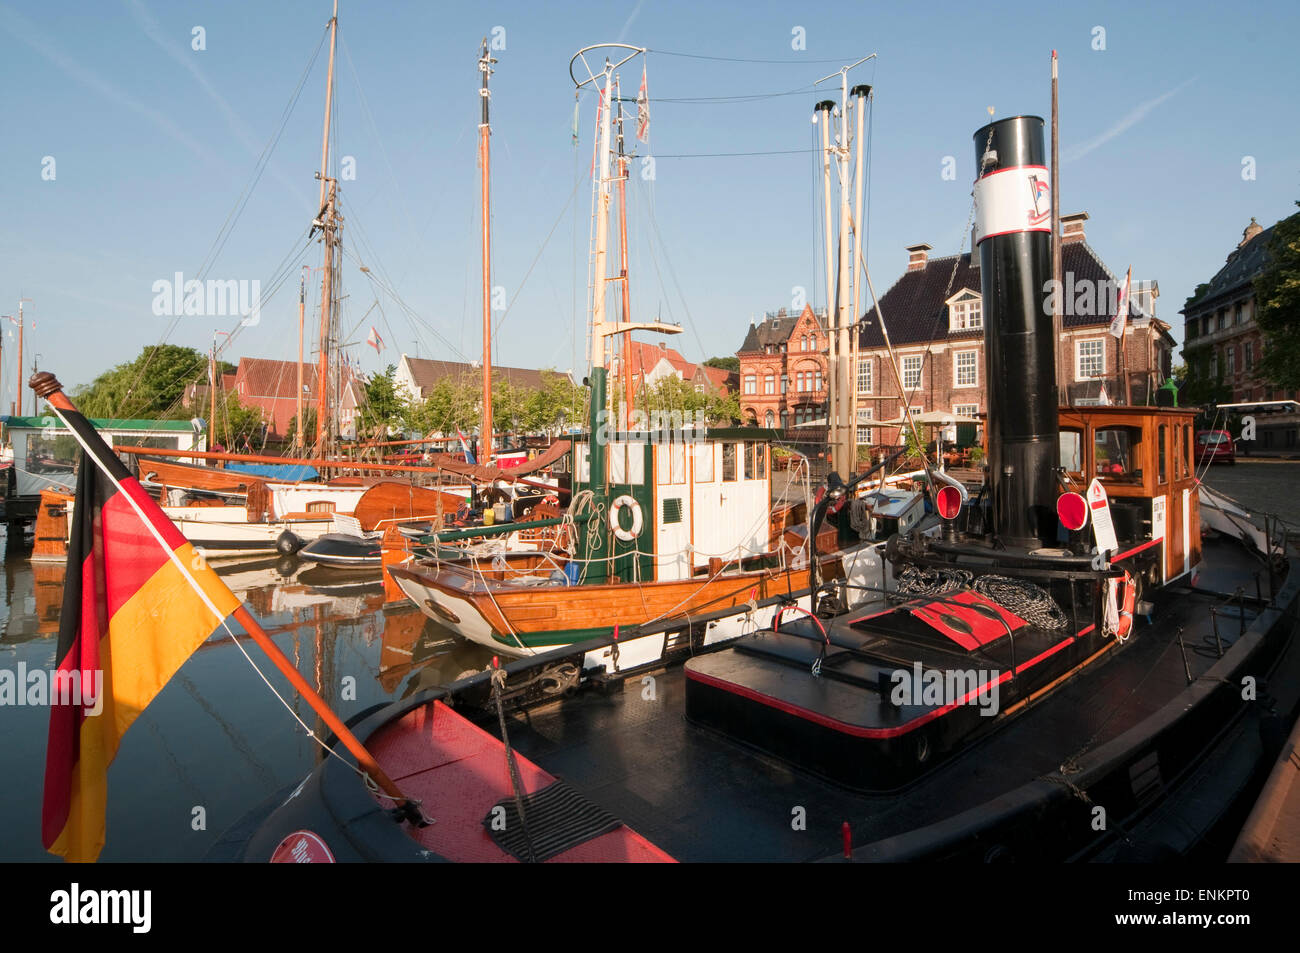 museum ships in the harbour, Leer, Ostfriesland, Lower Saxony, Germany - Stock Image